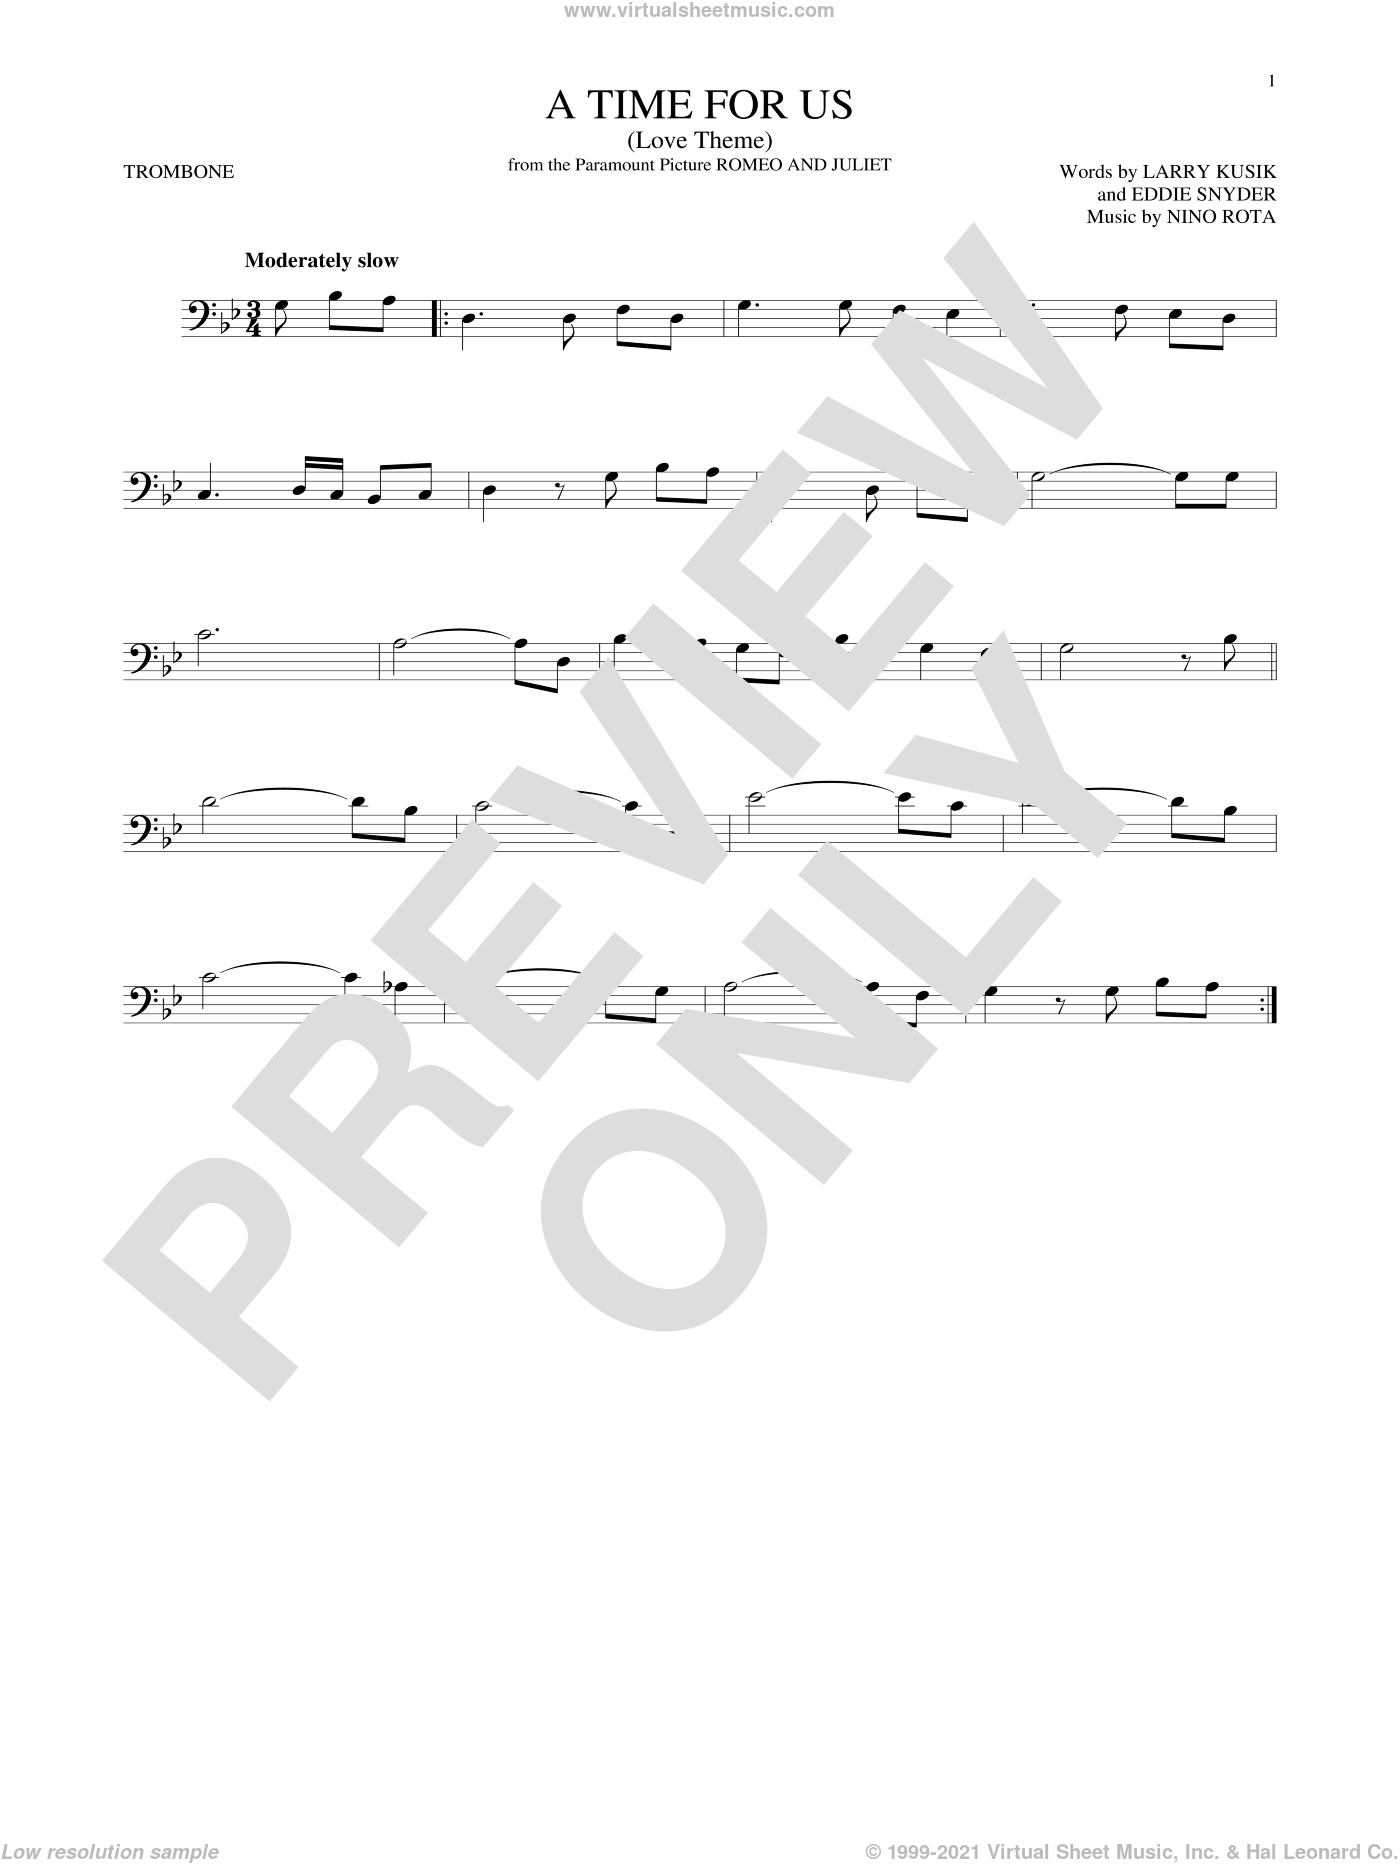 A Time For Us (Love Theme) sheet music for trombone solo by Nino Rota, Eddie Snyder and Larry Kusik, intermediate skill level